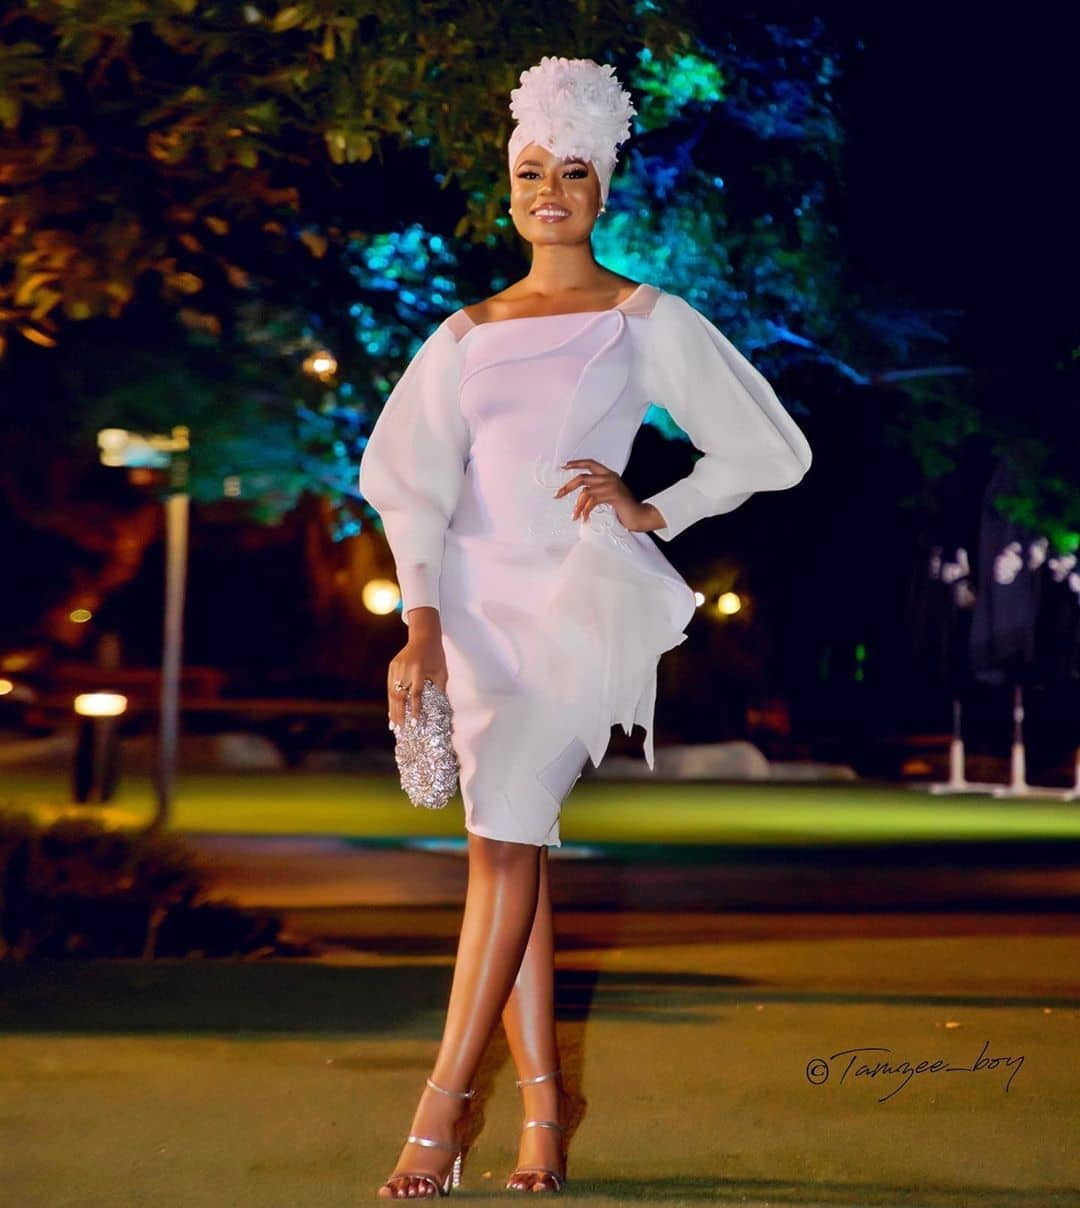 nancy-isime-white-outfit-heres-how-nigerian-celebrities-want-you-to-dress-as-the-ideal-wedding-guest-with-style-for-weddings-this-december